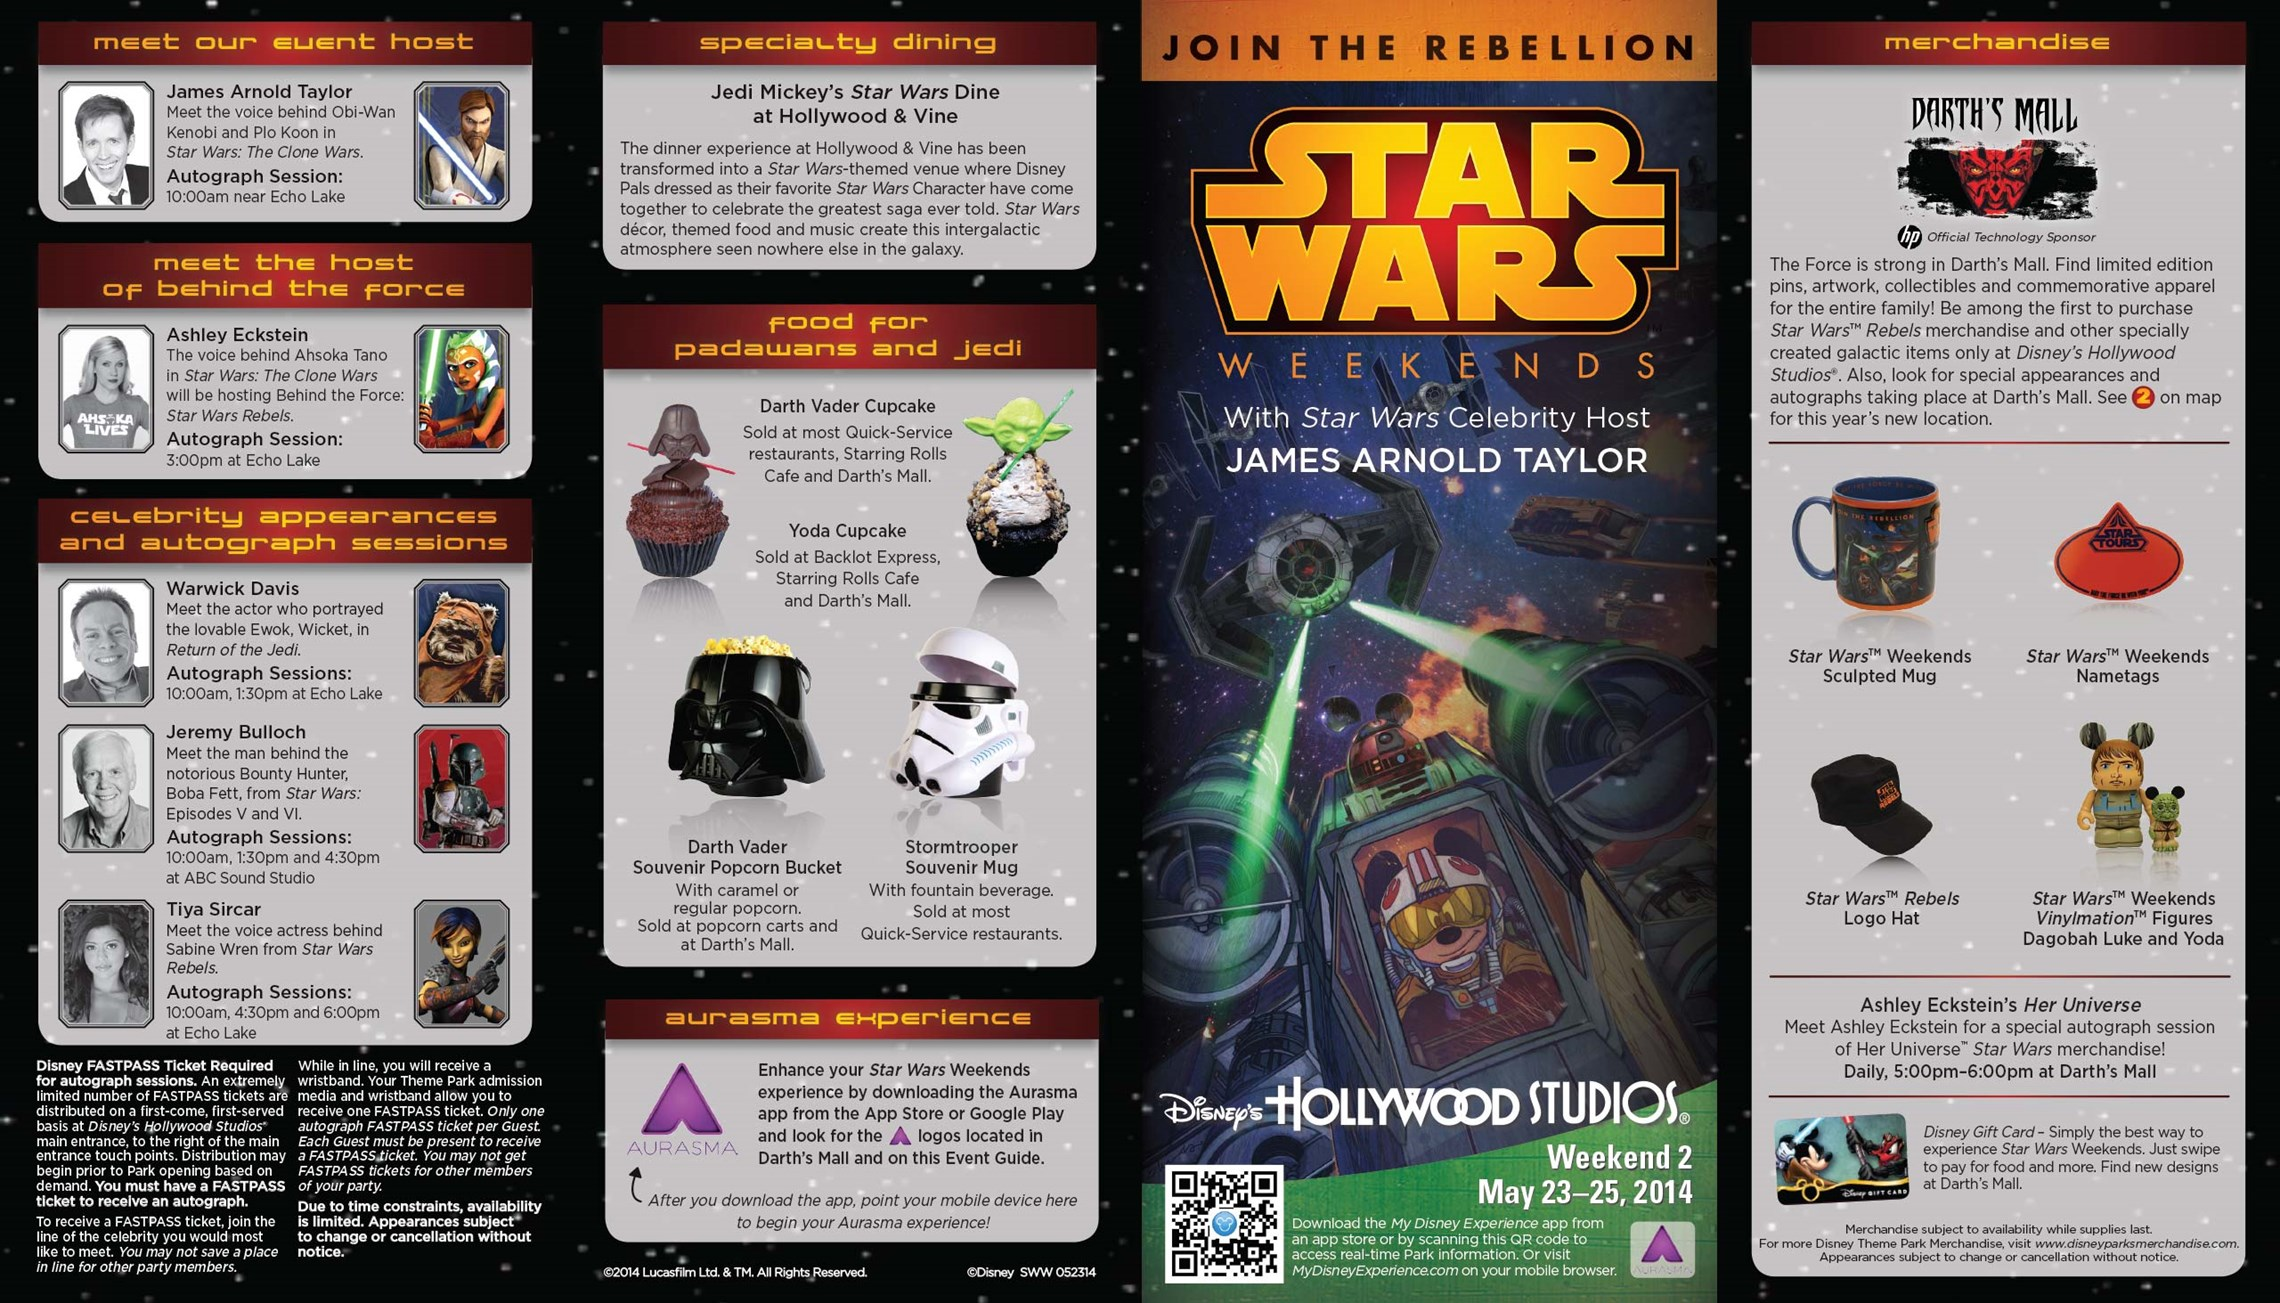 2014 Star Wars Weekends May 23 - 25 Weekend 2 guide map